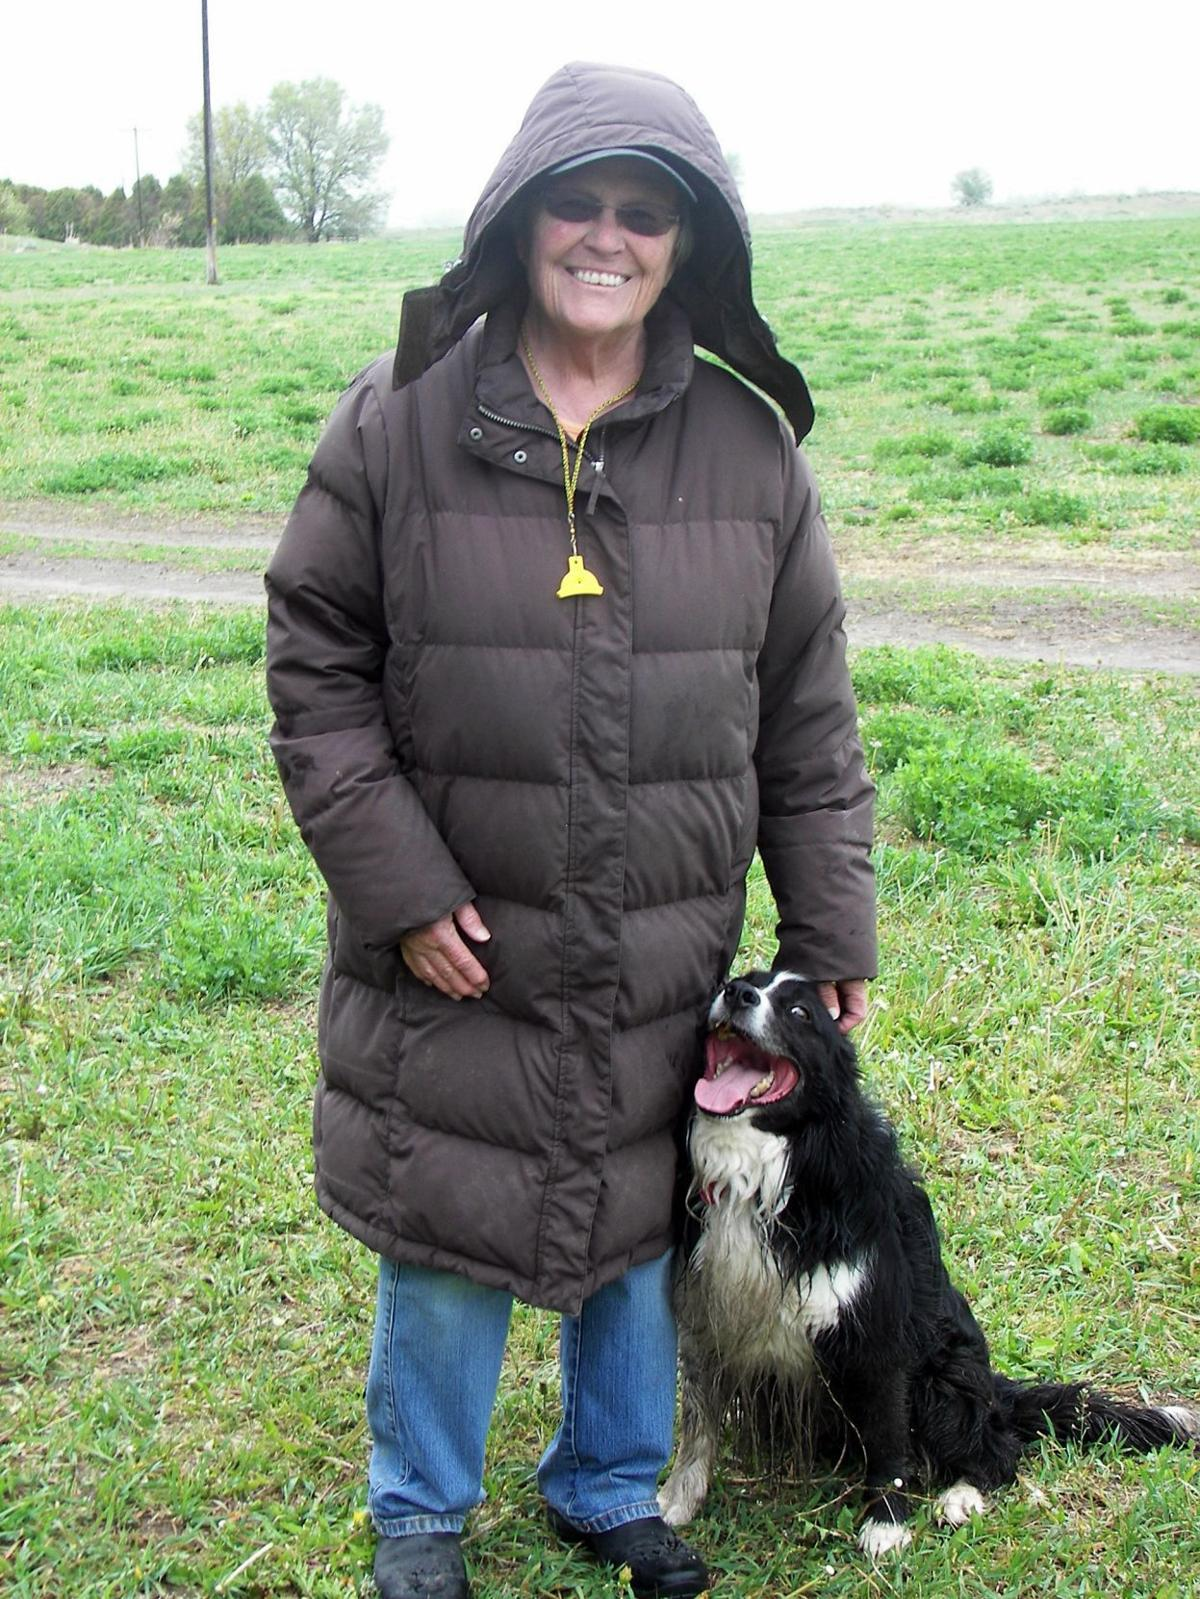 Stock dogs come in handy on the ranch | News | postregister com